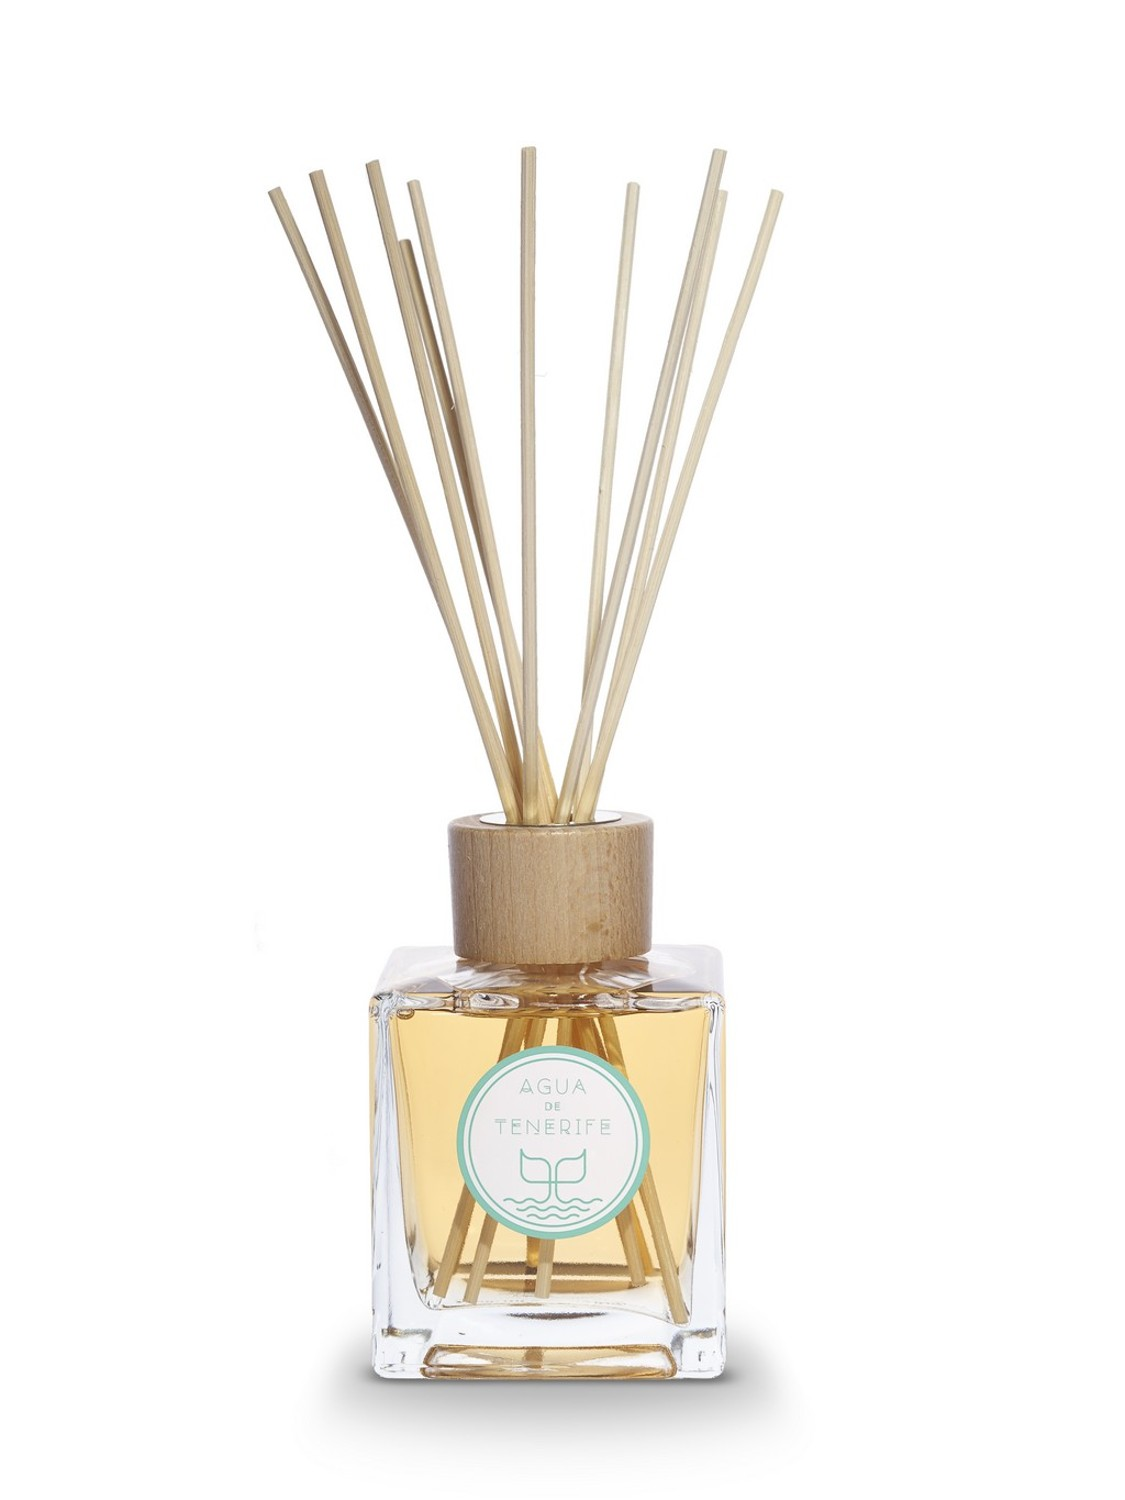 shop Agua de Tenerife  LAS FRAGANCIAS DE LA ISLA: Las Americas Air Freshner 250 ml. 